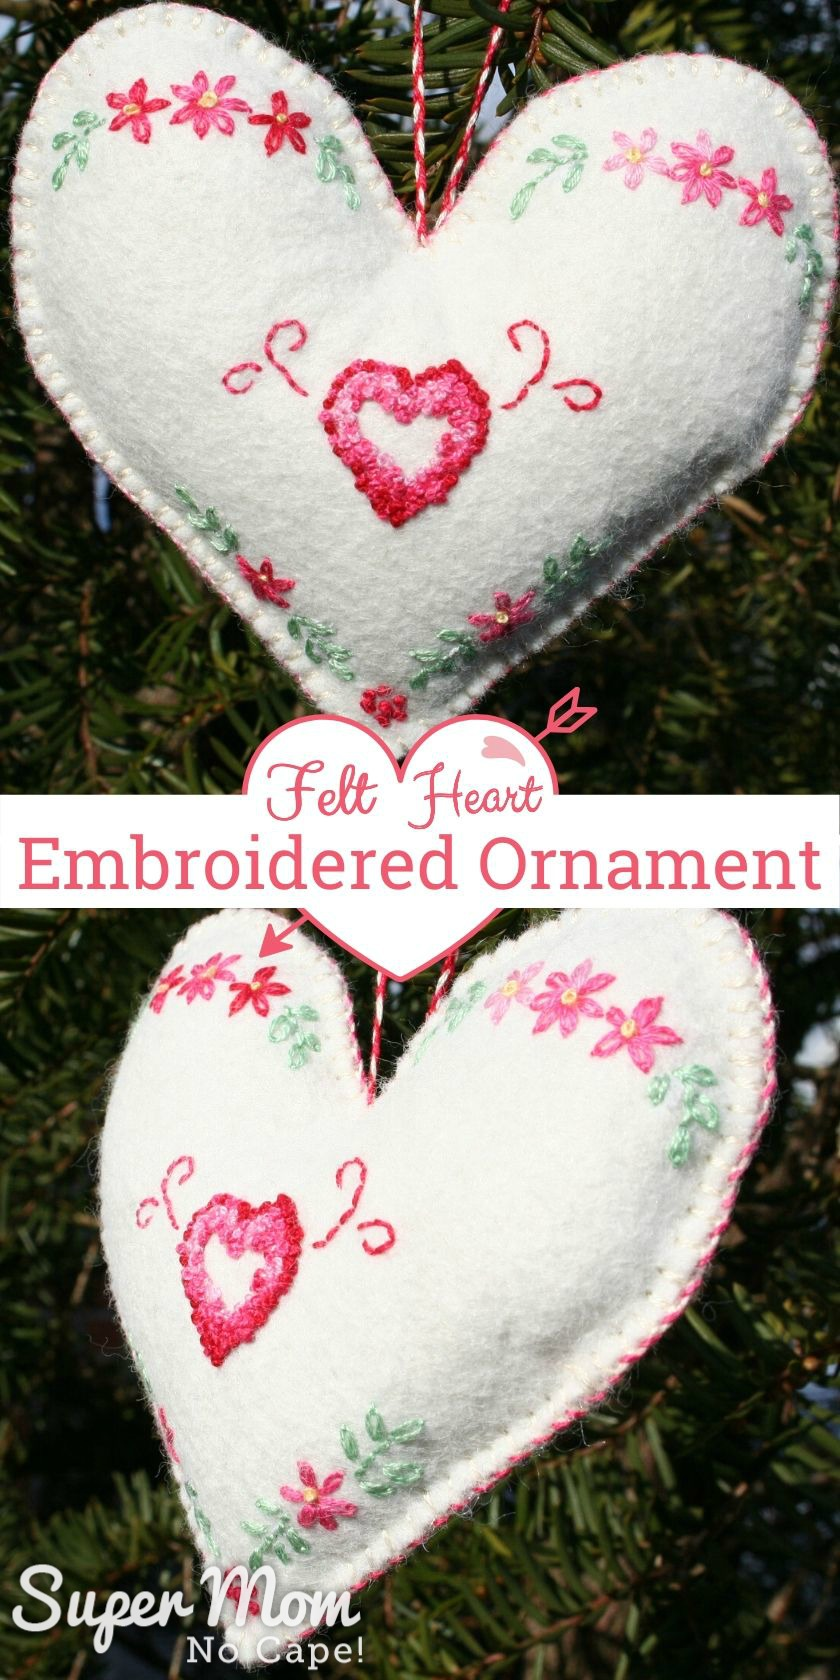 collage photo of the Felt Heart Embroidered Ornament